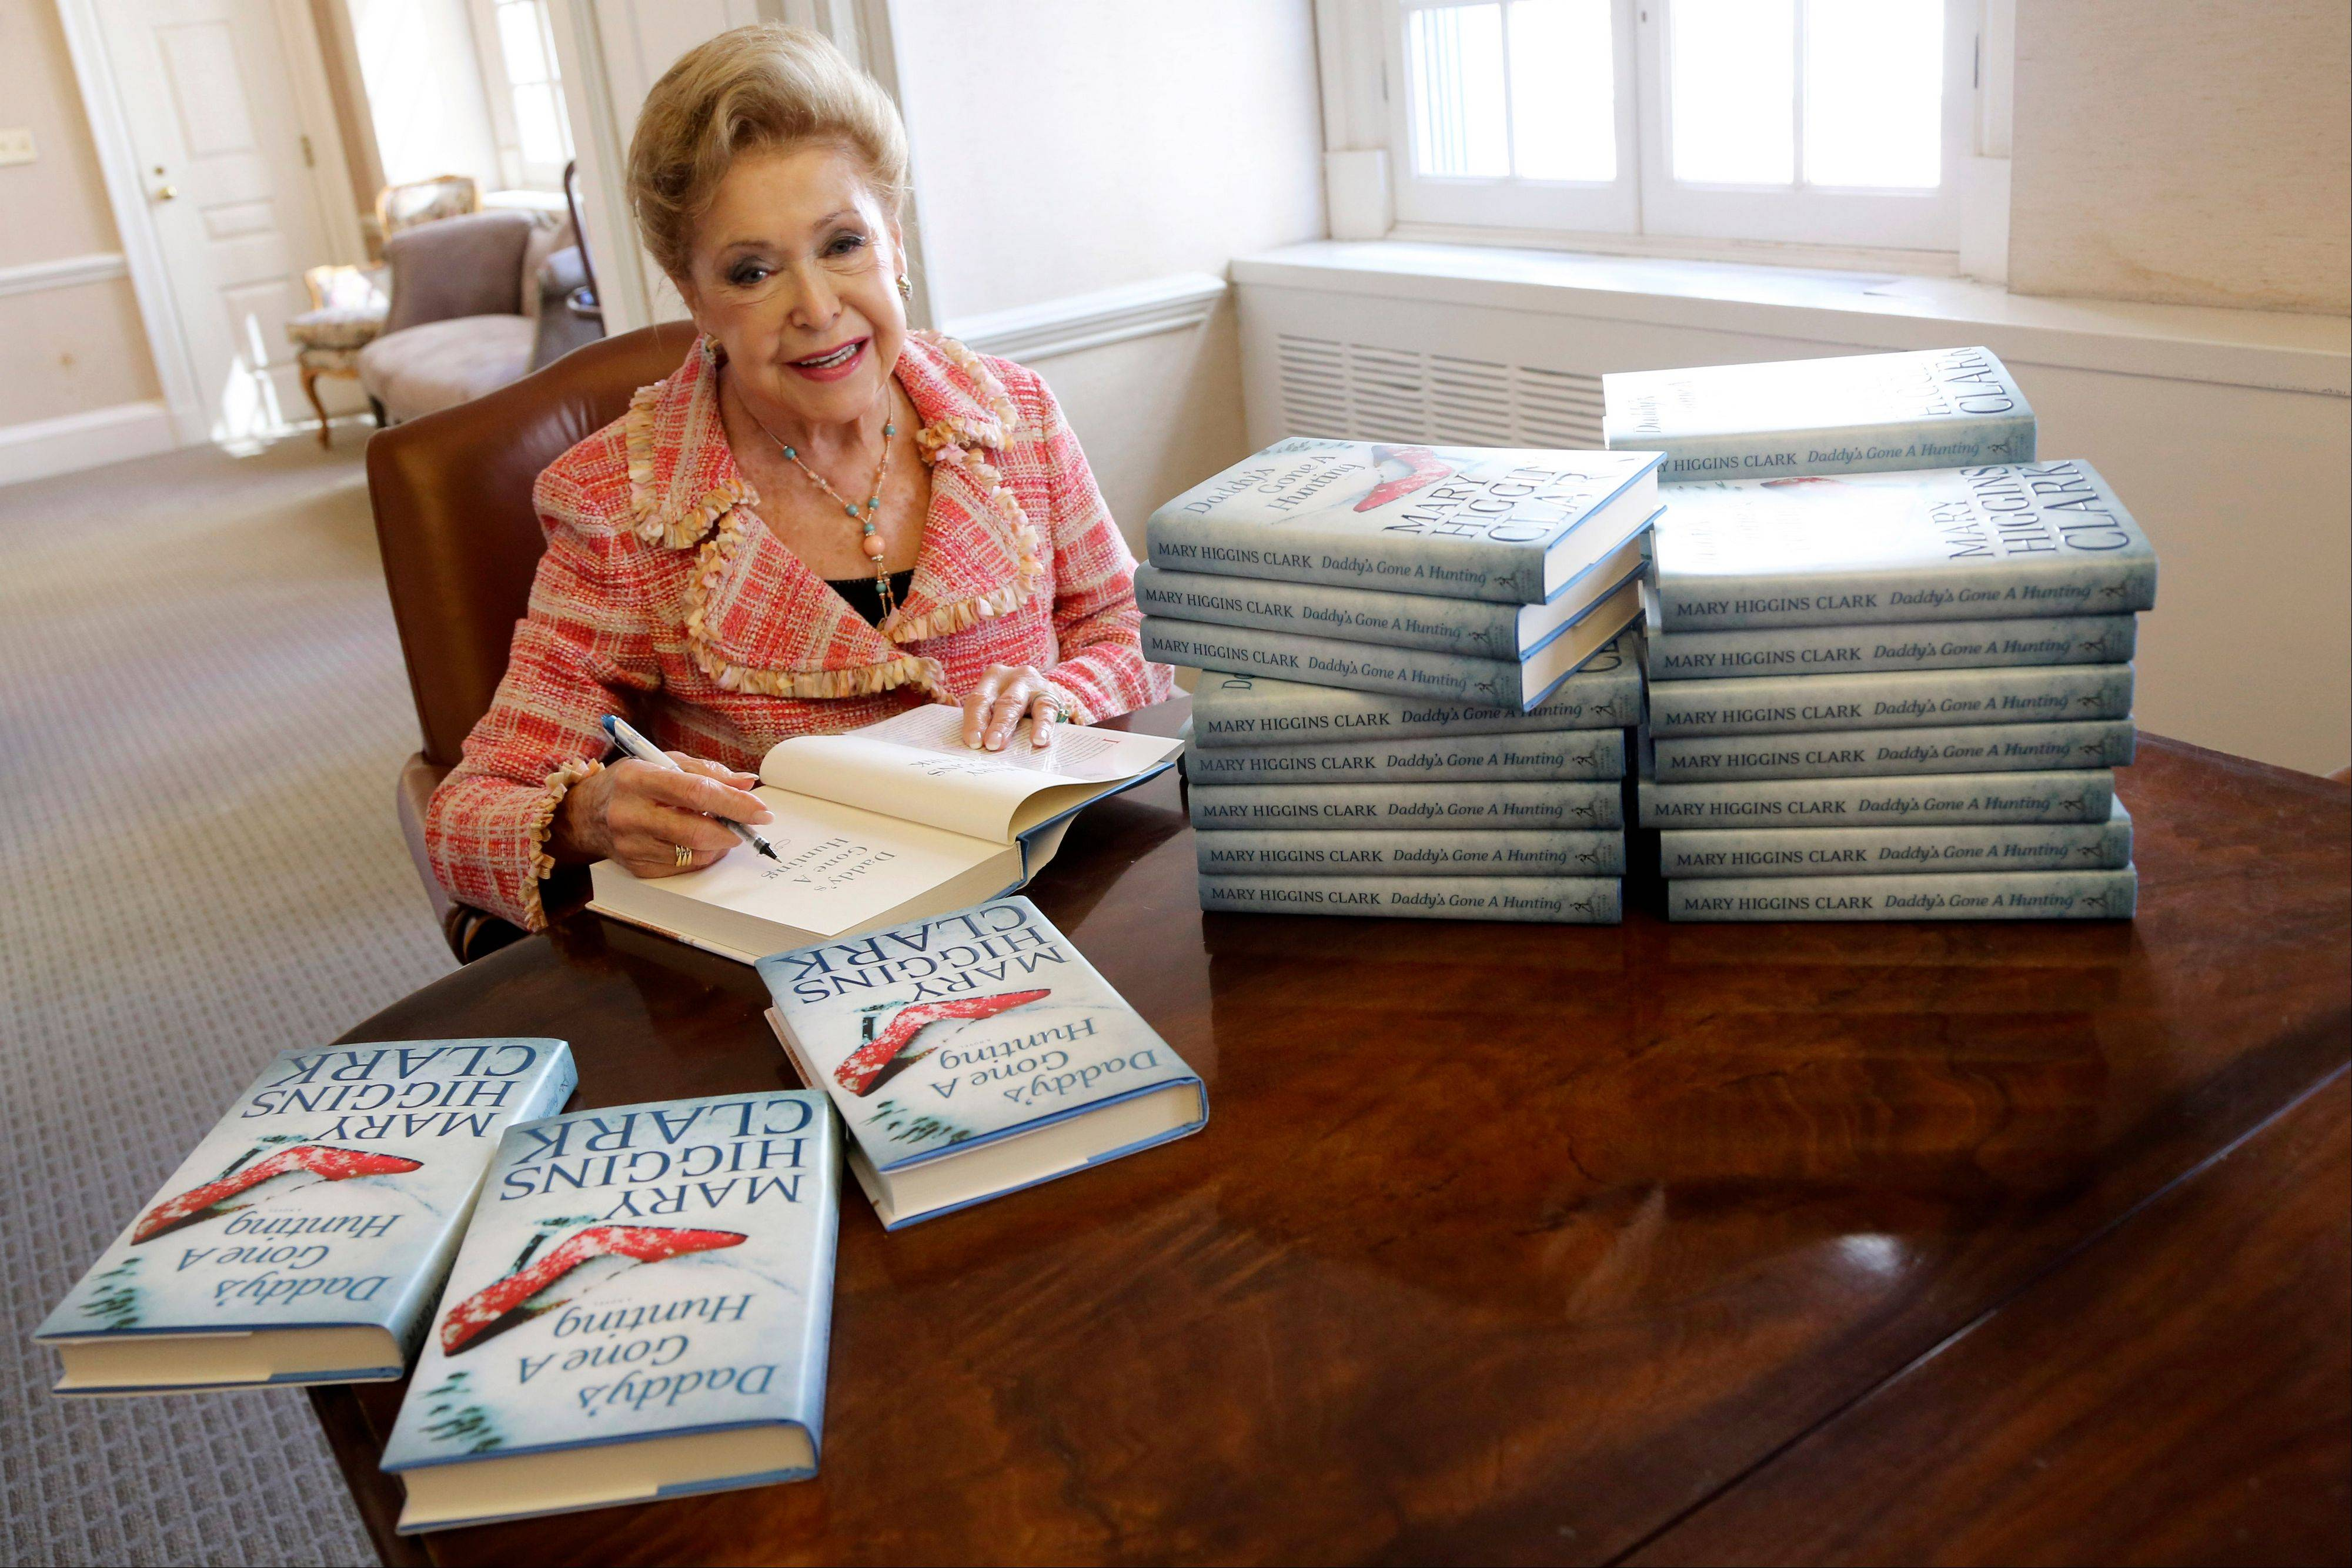 Author Mary Higgins Clark's current book is a vintage thriller featuring women in distress, mysterious pasts and secret identities.